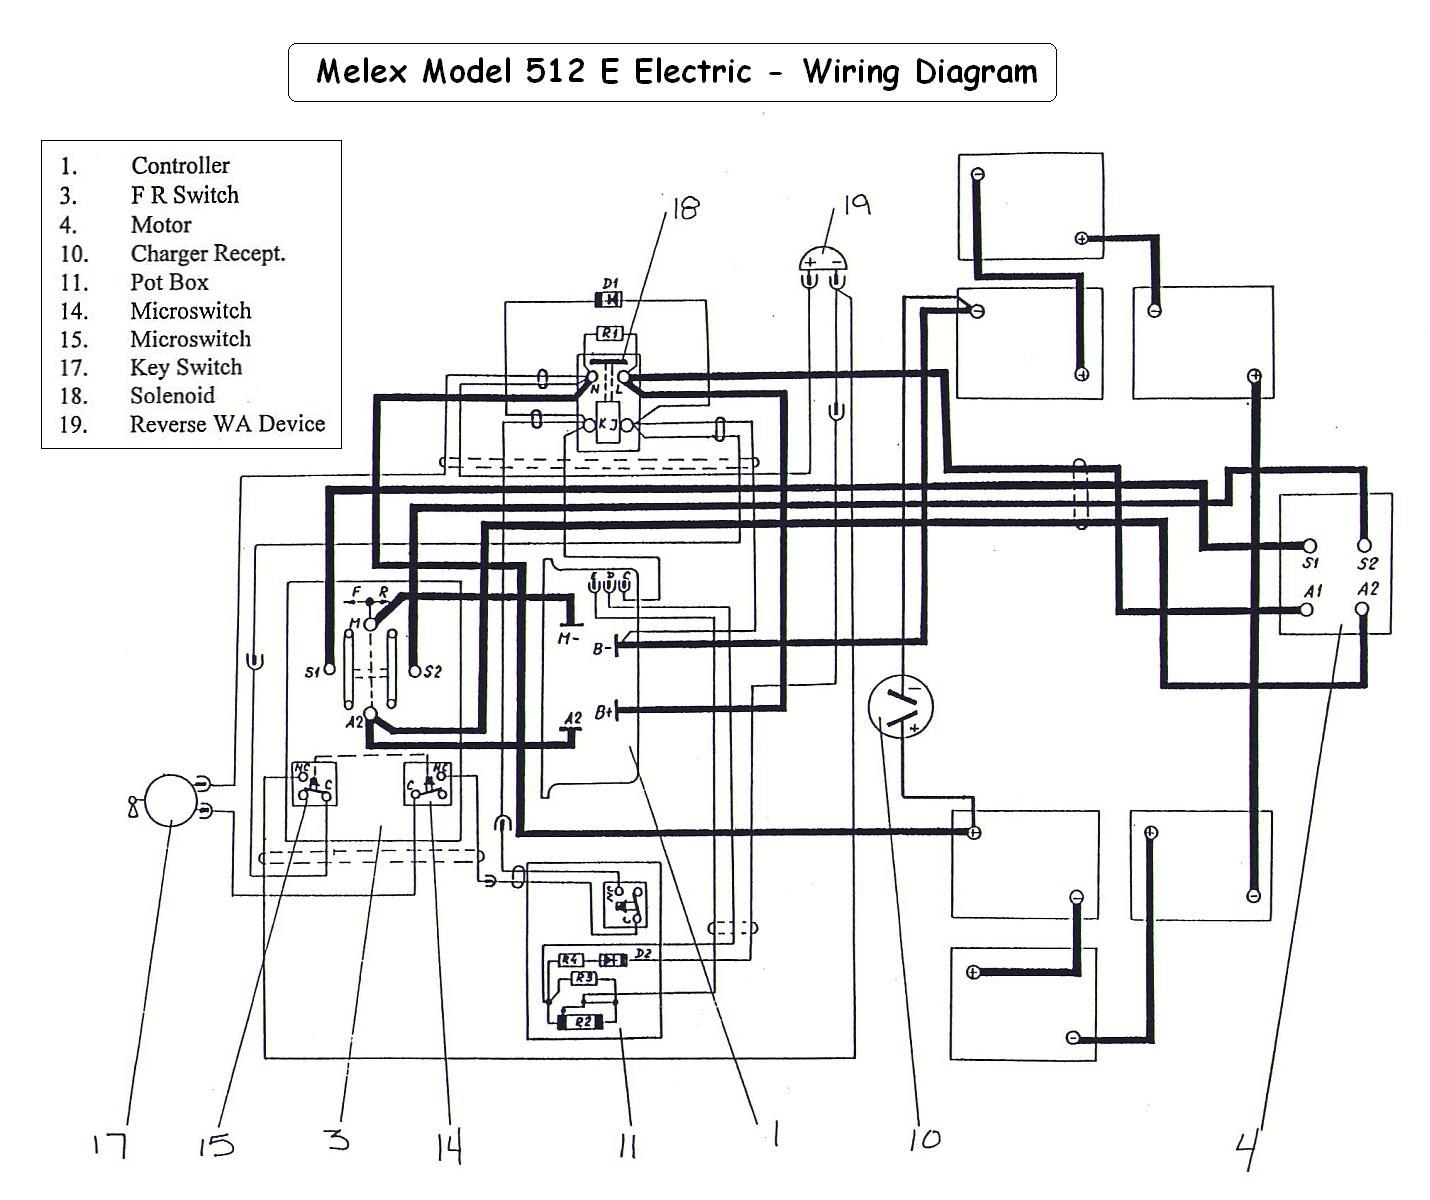 Melex512E_wiring_diagram vintagegolfcartparts com golf cart wiring schematic at readyjetset.co